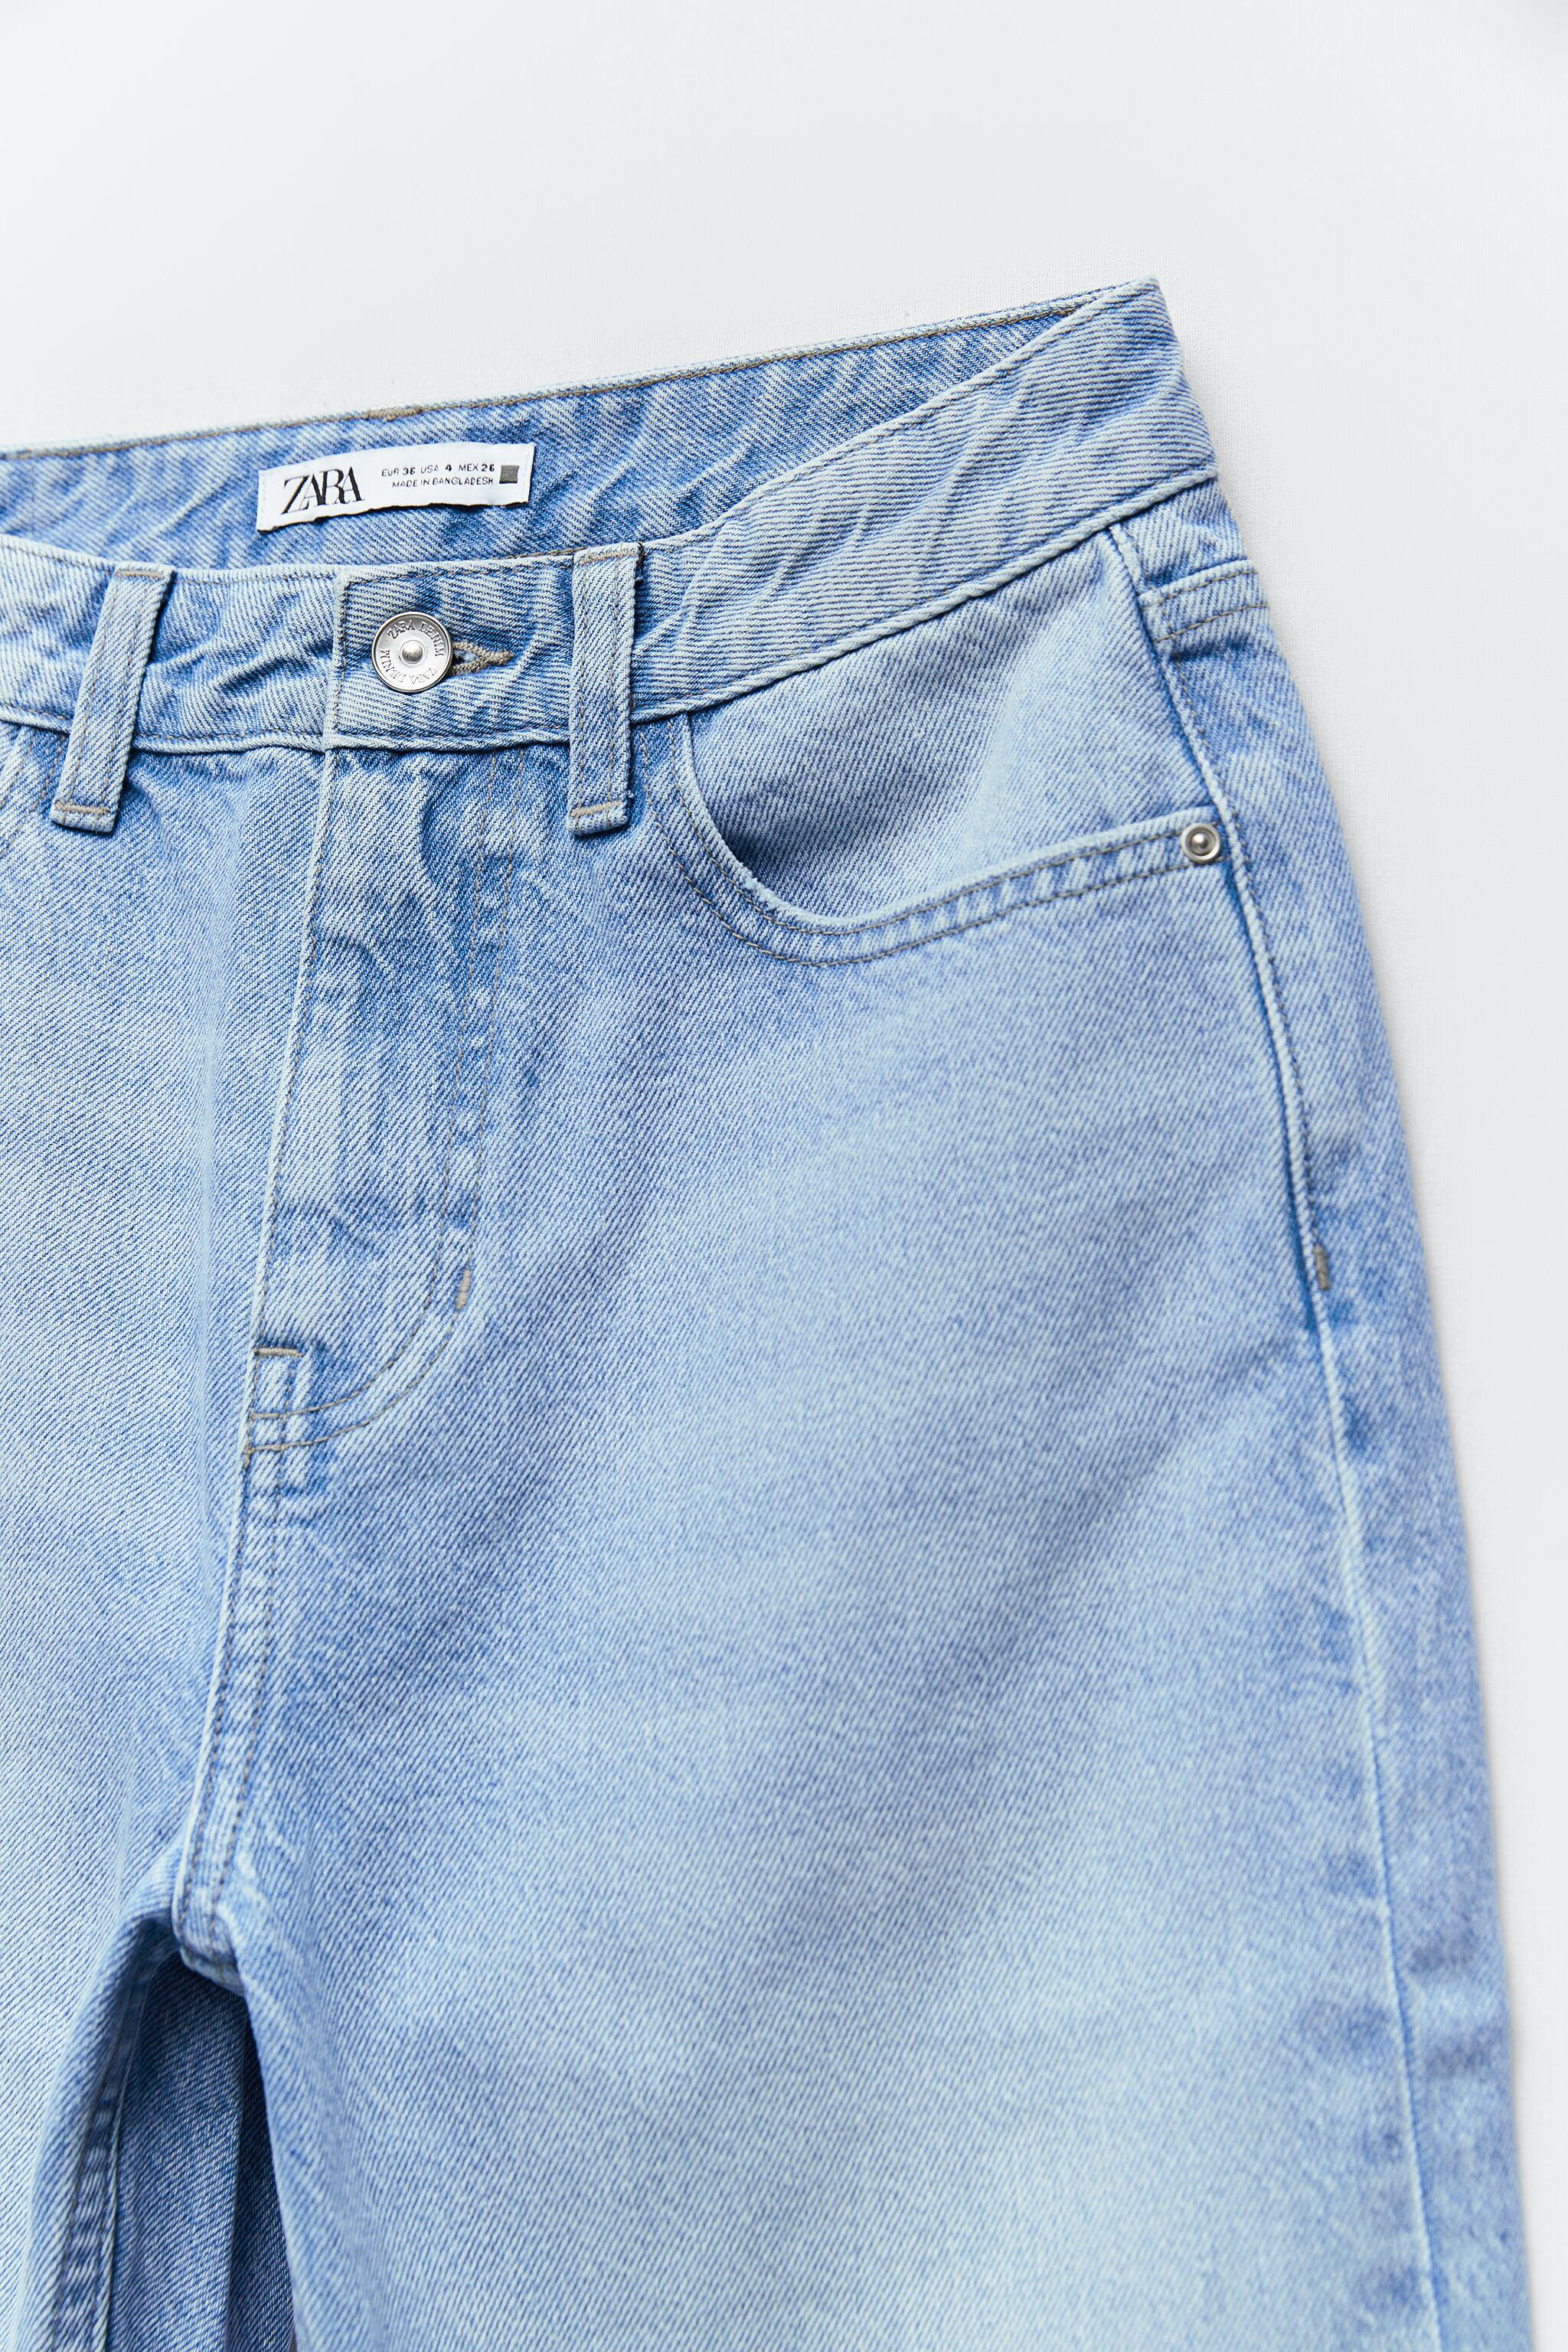 Z1975 HIGH RISE TAPERED JEANS 7